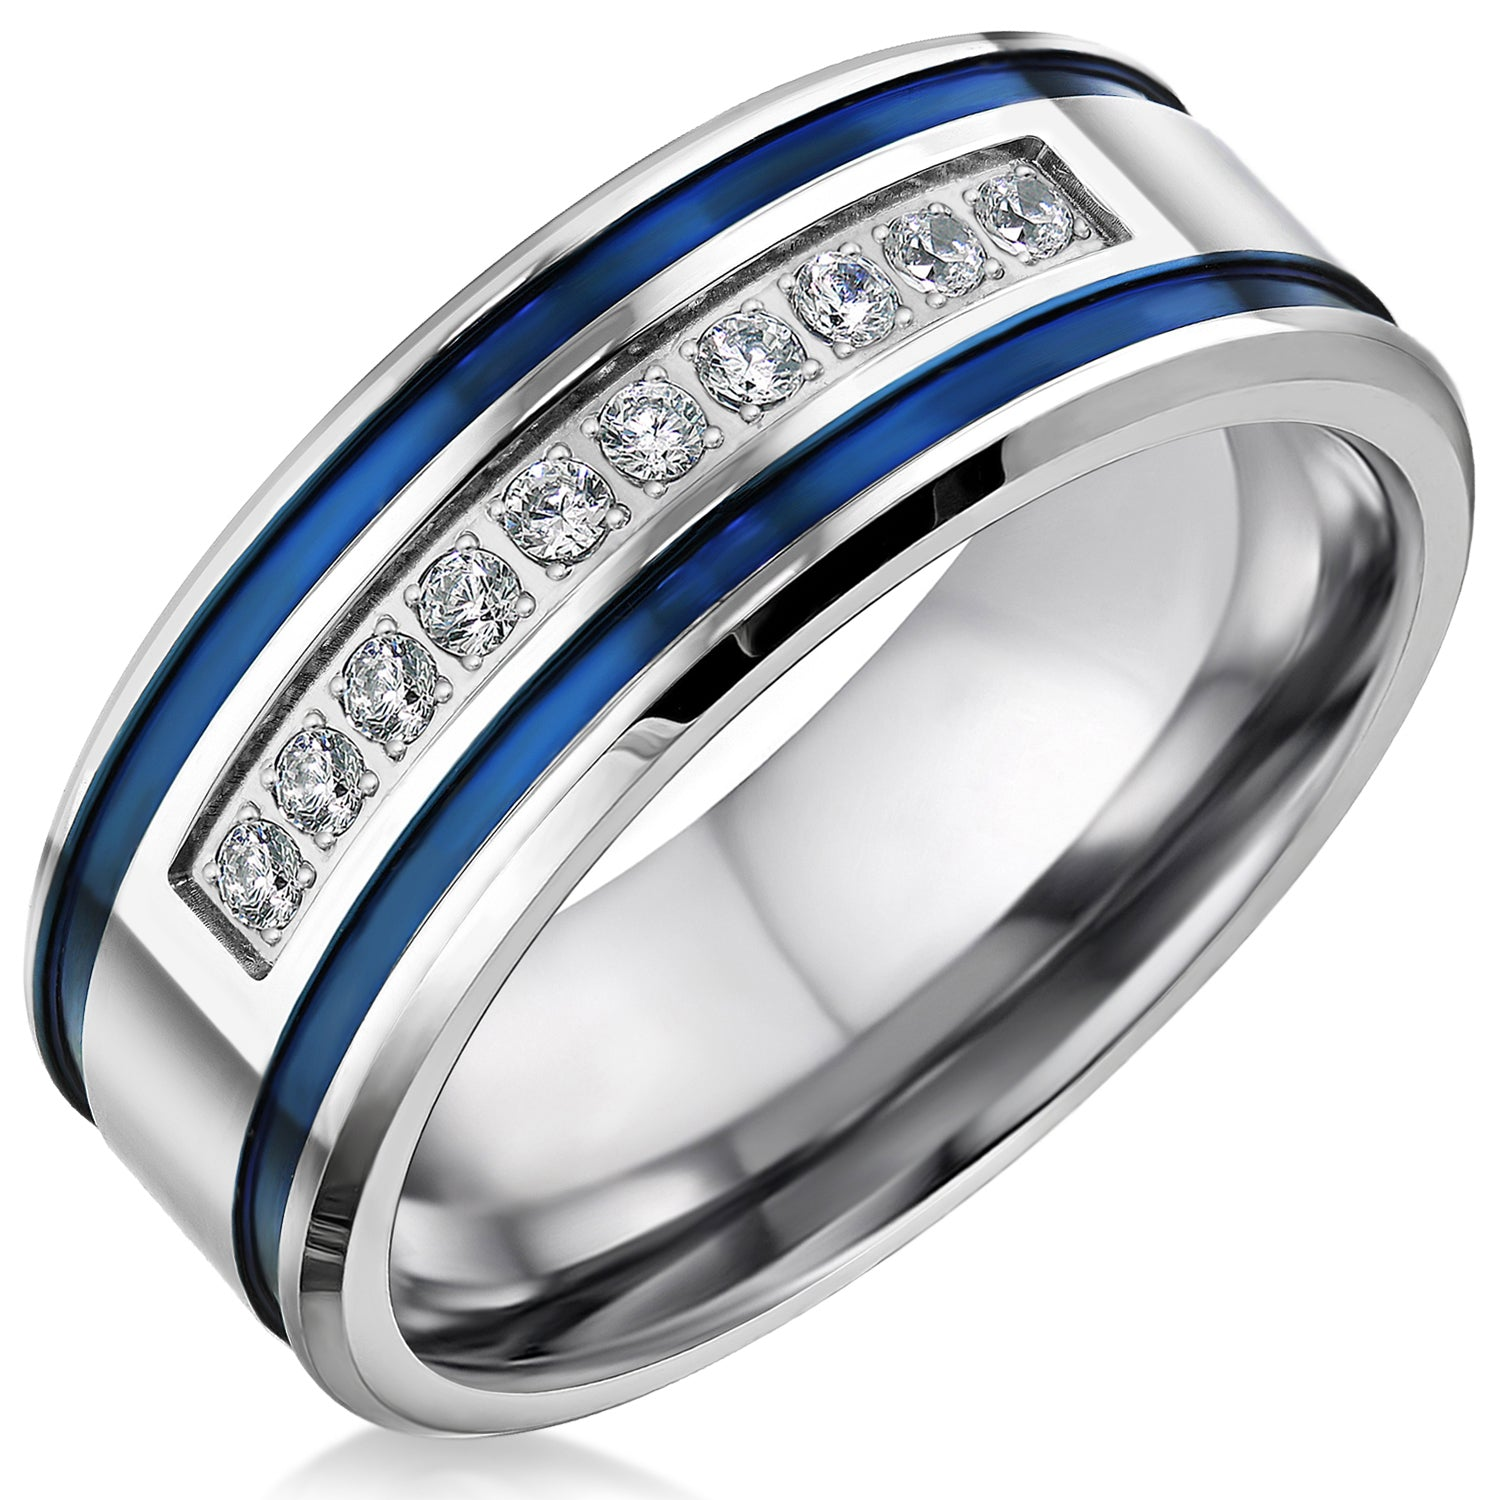 Mens Wedding Bands Stainless Steel Cubic Zirconia 8mm Blue Stripes Engagement Rings for Him